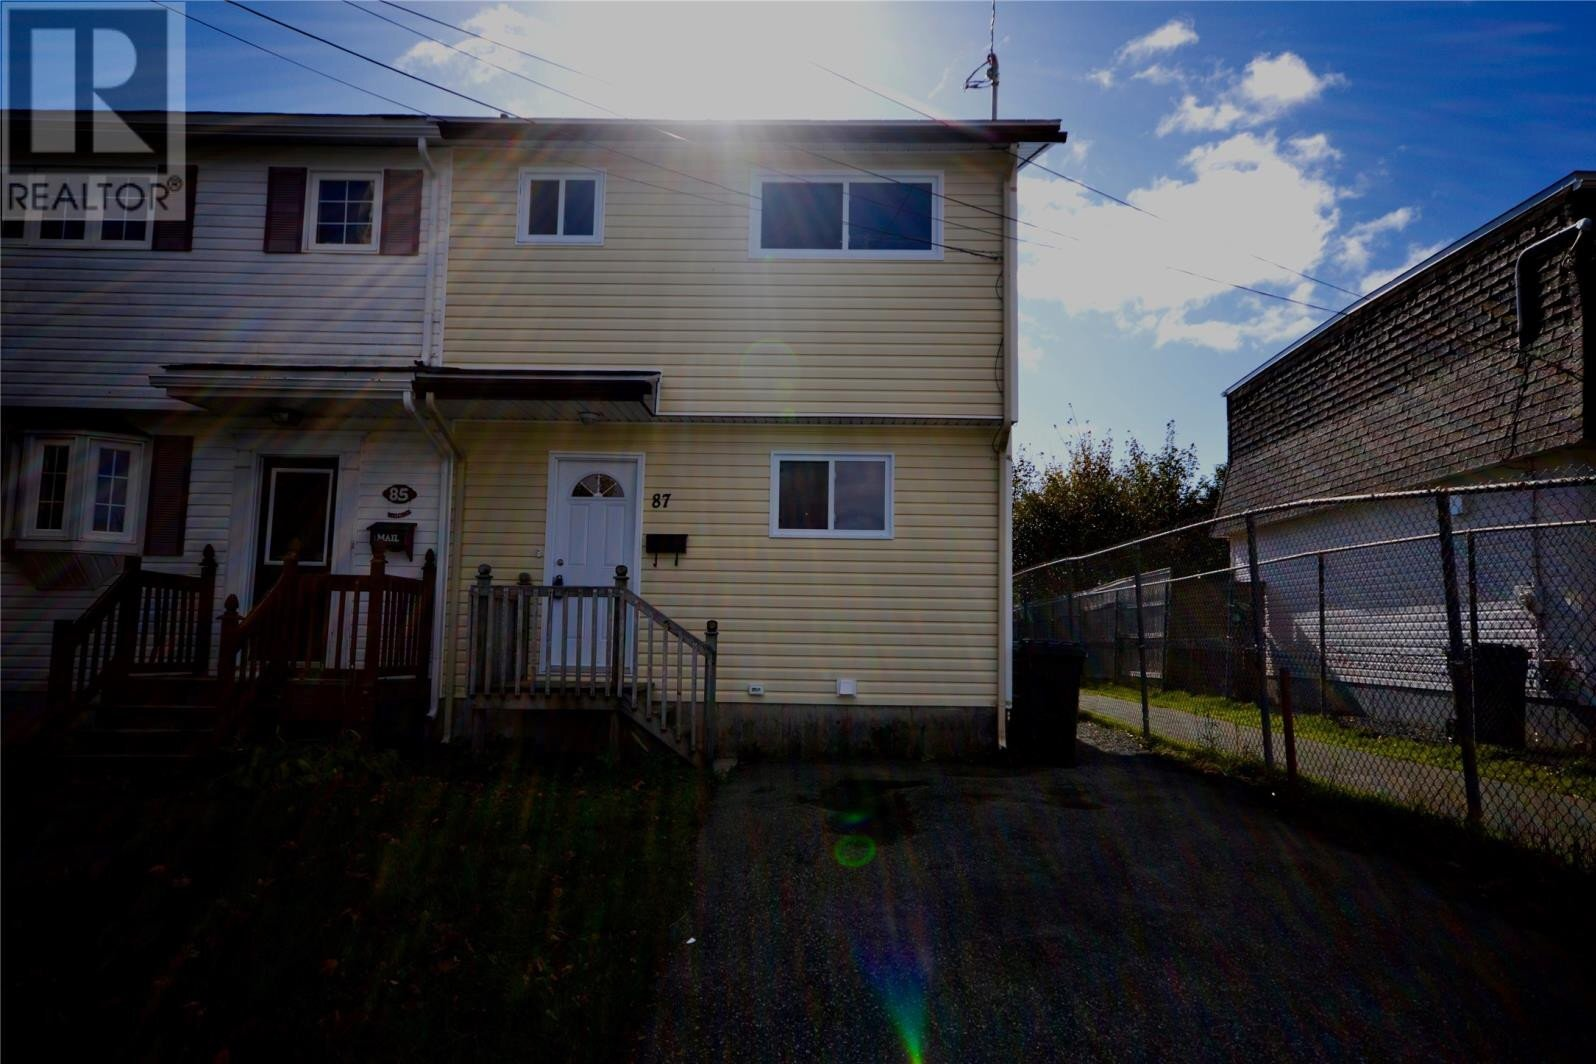 House for sale at 87 Sunrise Ave Mount Pearl Newfoundland - MLS: 1222357